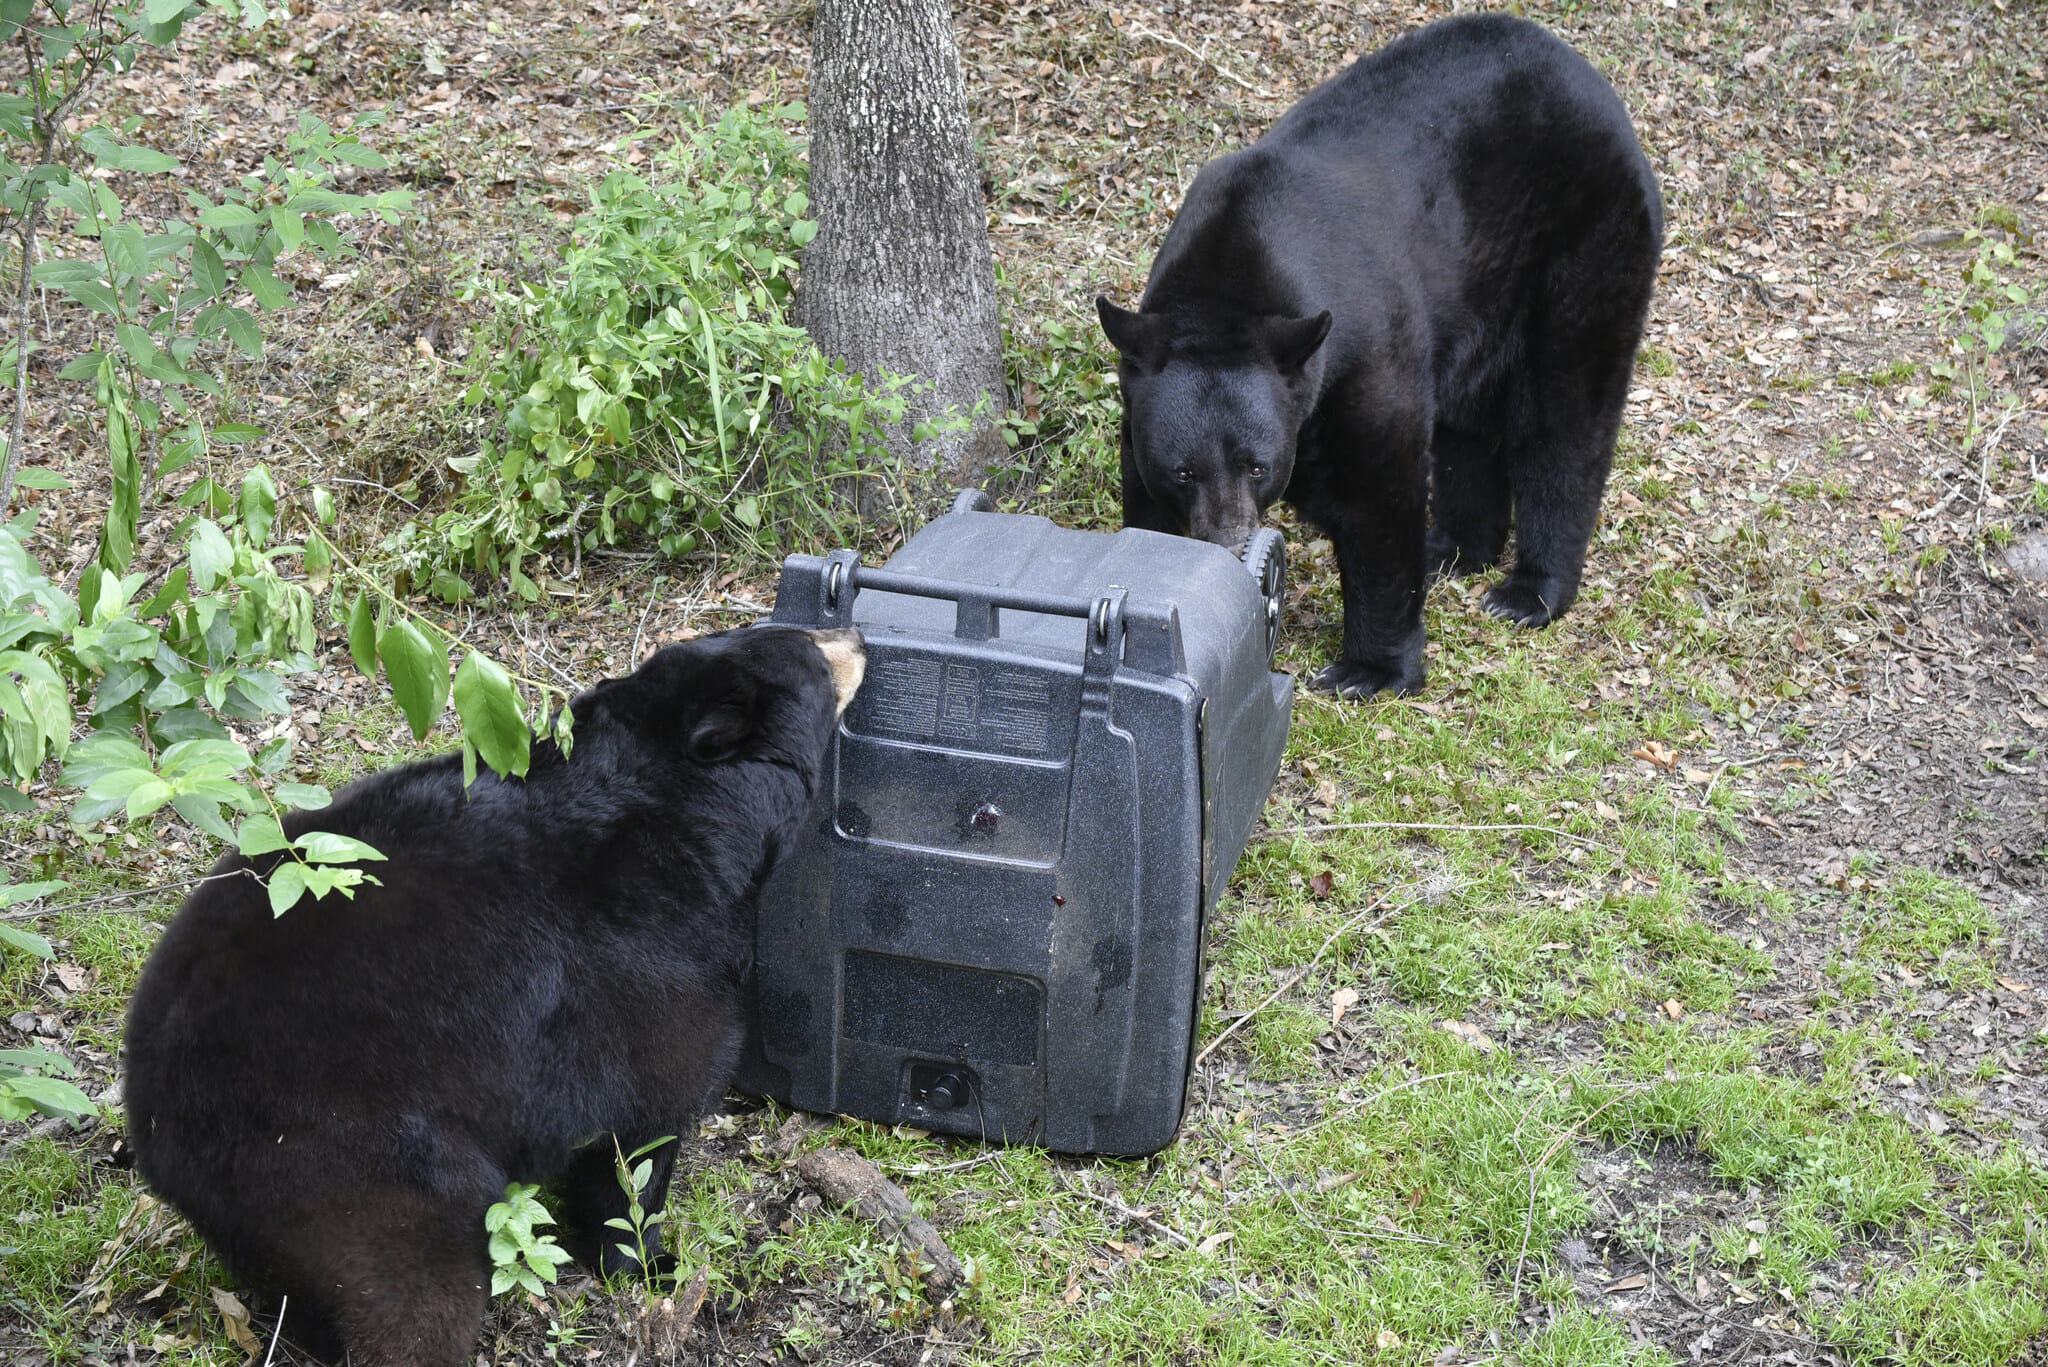 Bears opening trash can